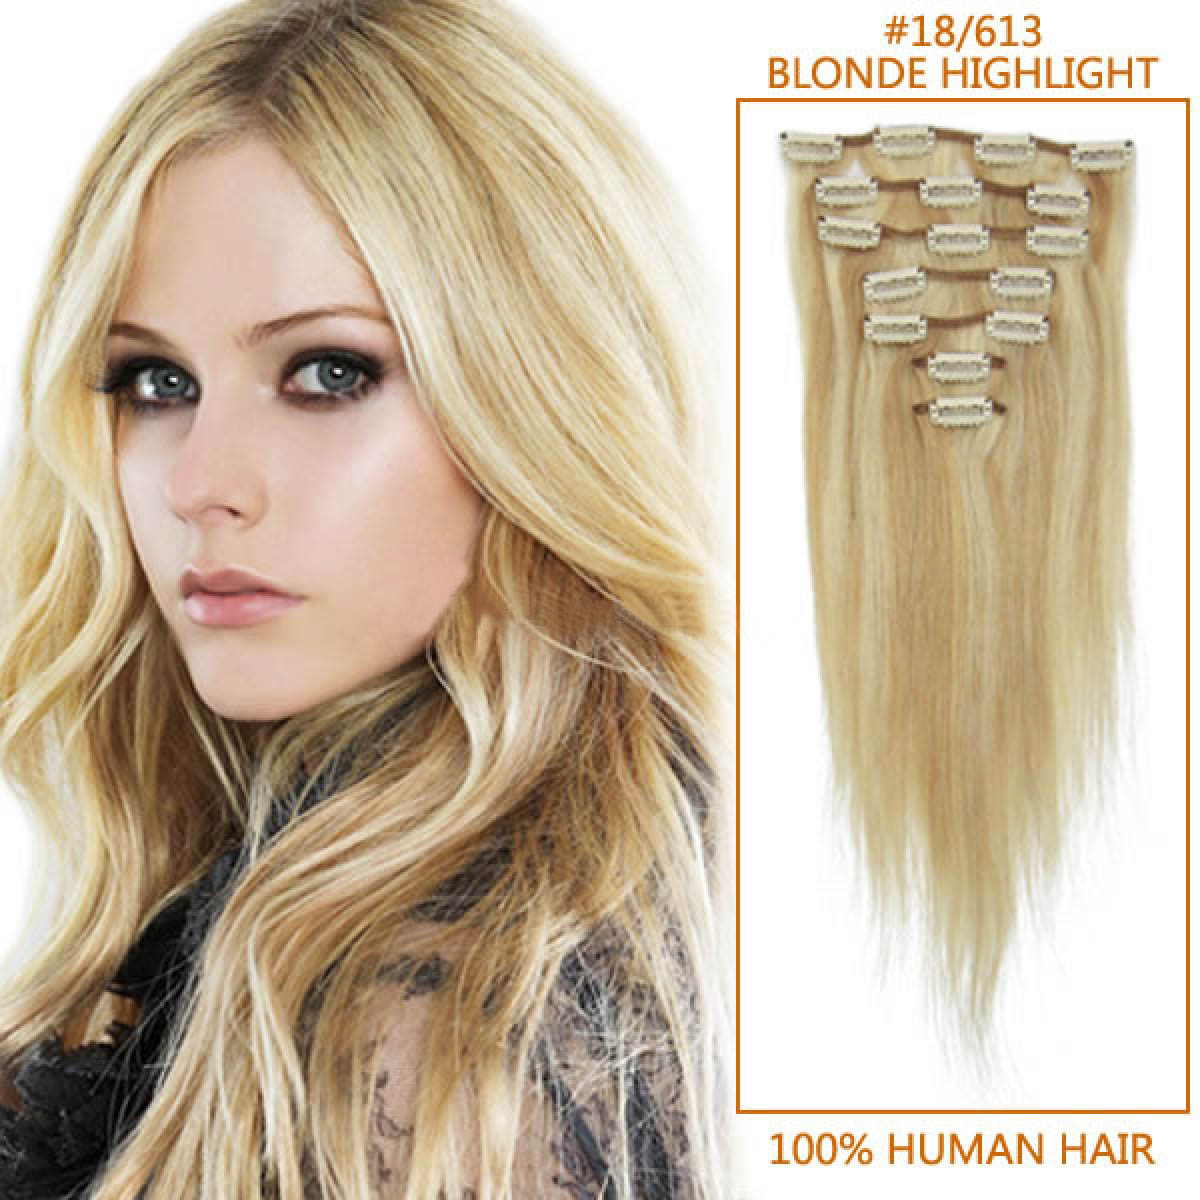 22 Inch 18613 Blonde Highlight Clip In Remy Human Hair Extensions